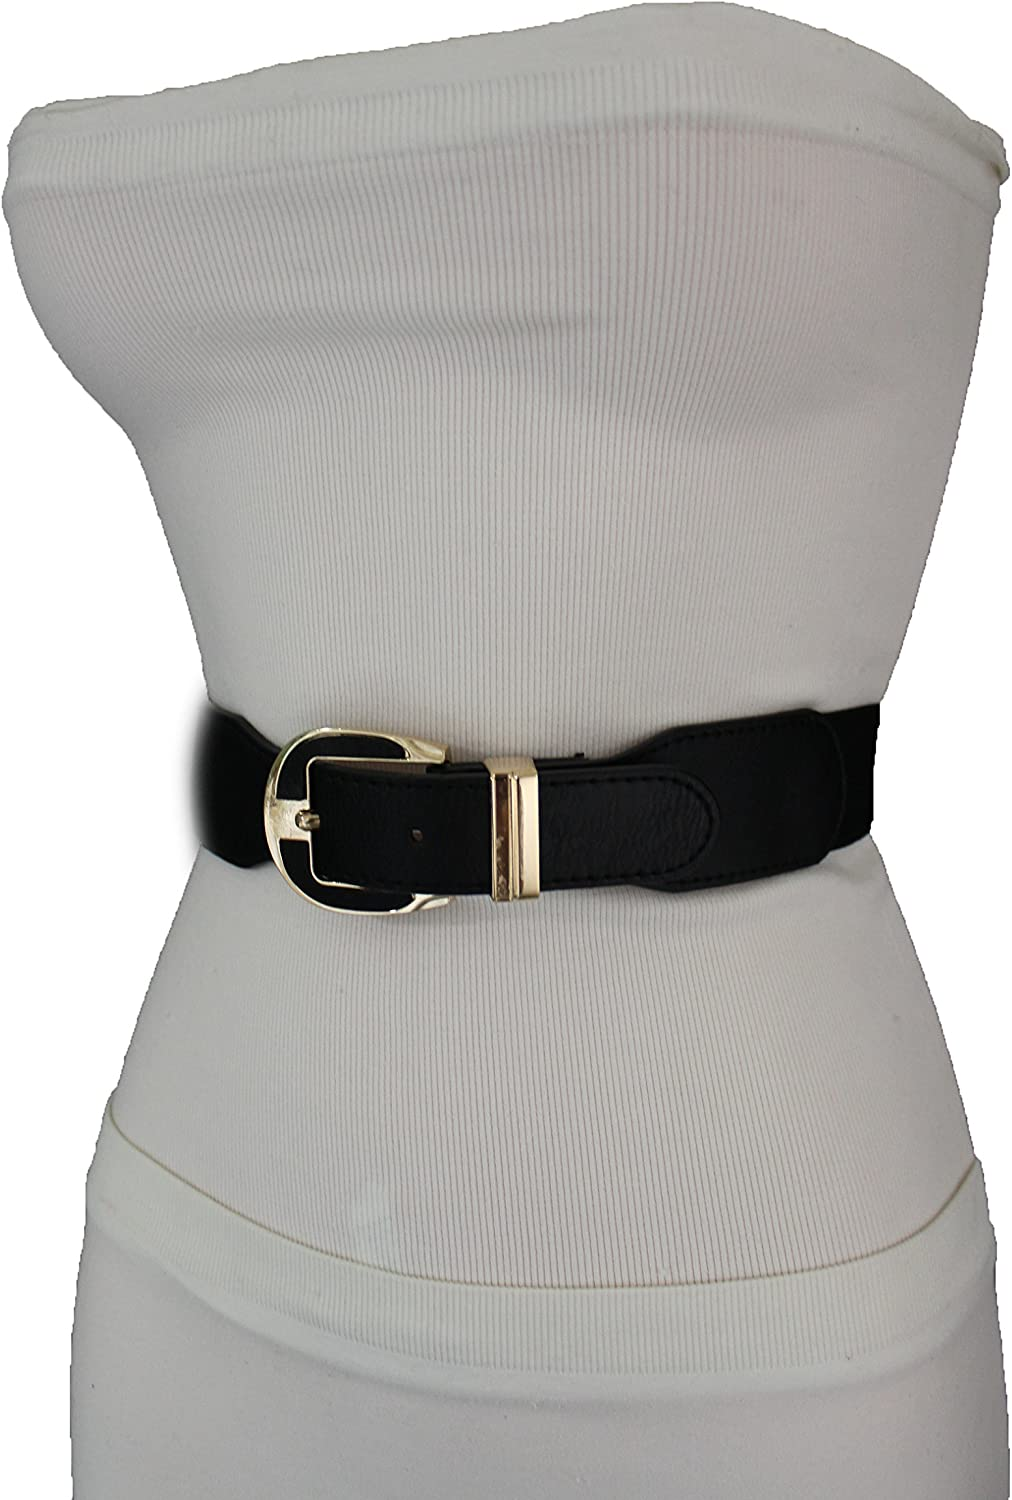 Women Elastic Belt Black Gold Wide High Waist Hip Faux Leather Band Fashion M L